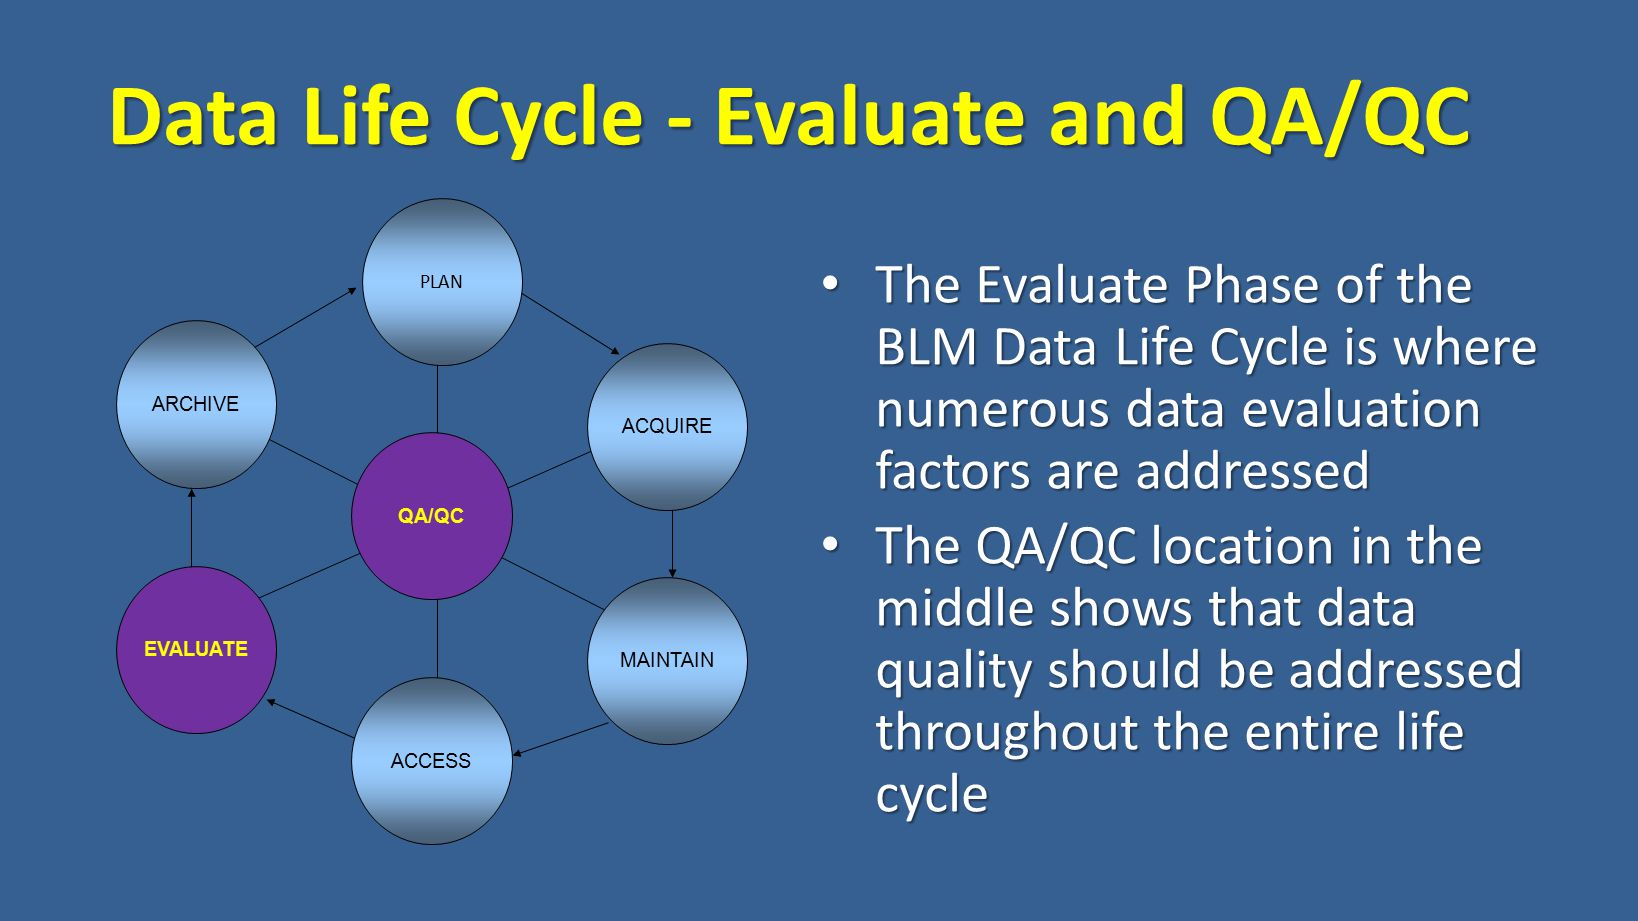 Data Life Cycle - Evaluate and QA/QC The Evaluate Phase of the BLM Data Life Cycle is where numerous data evaluation factors are addressed The Evaluate Phase of the BLM Data Life Cycle is where numerous data evaluation factors are addressed The QA/QC location in the middle shows that data quality should be addressed throughout the entire life cycle The QA/QC location in the middle shows that data quality should be addressed throughout the entire life cycle QA/QC PLAN ACCESS ARCHIVE ACQUIRE EVALUATE MAINTAIN